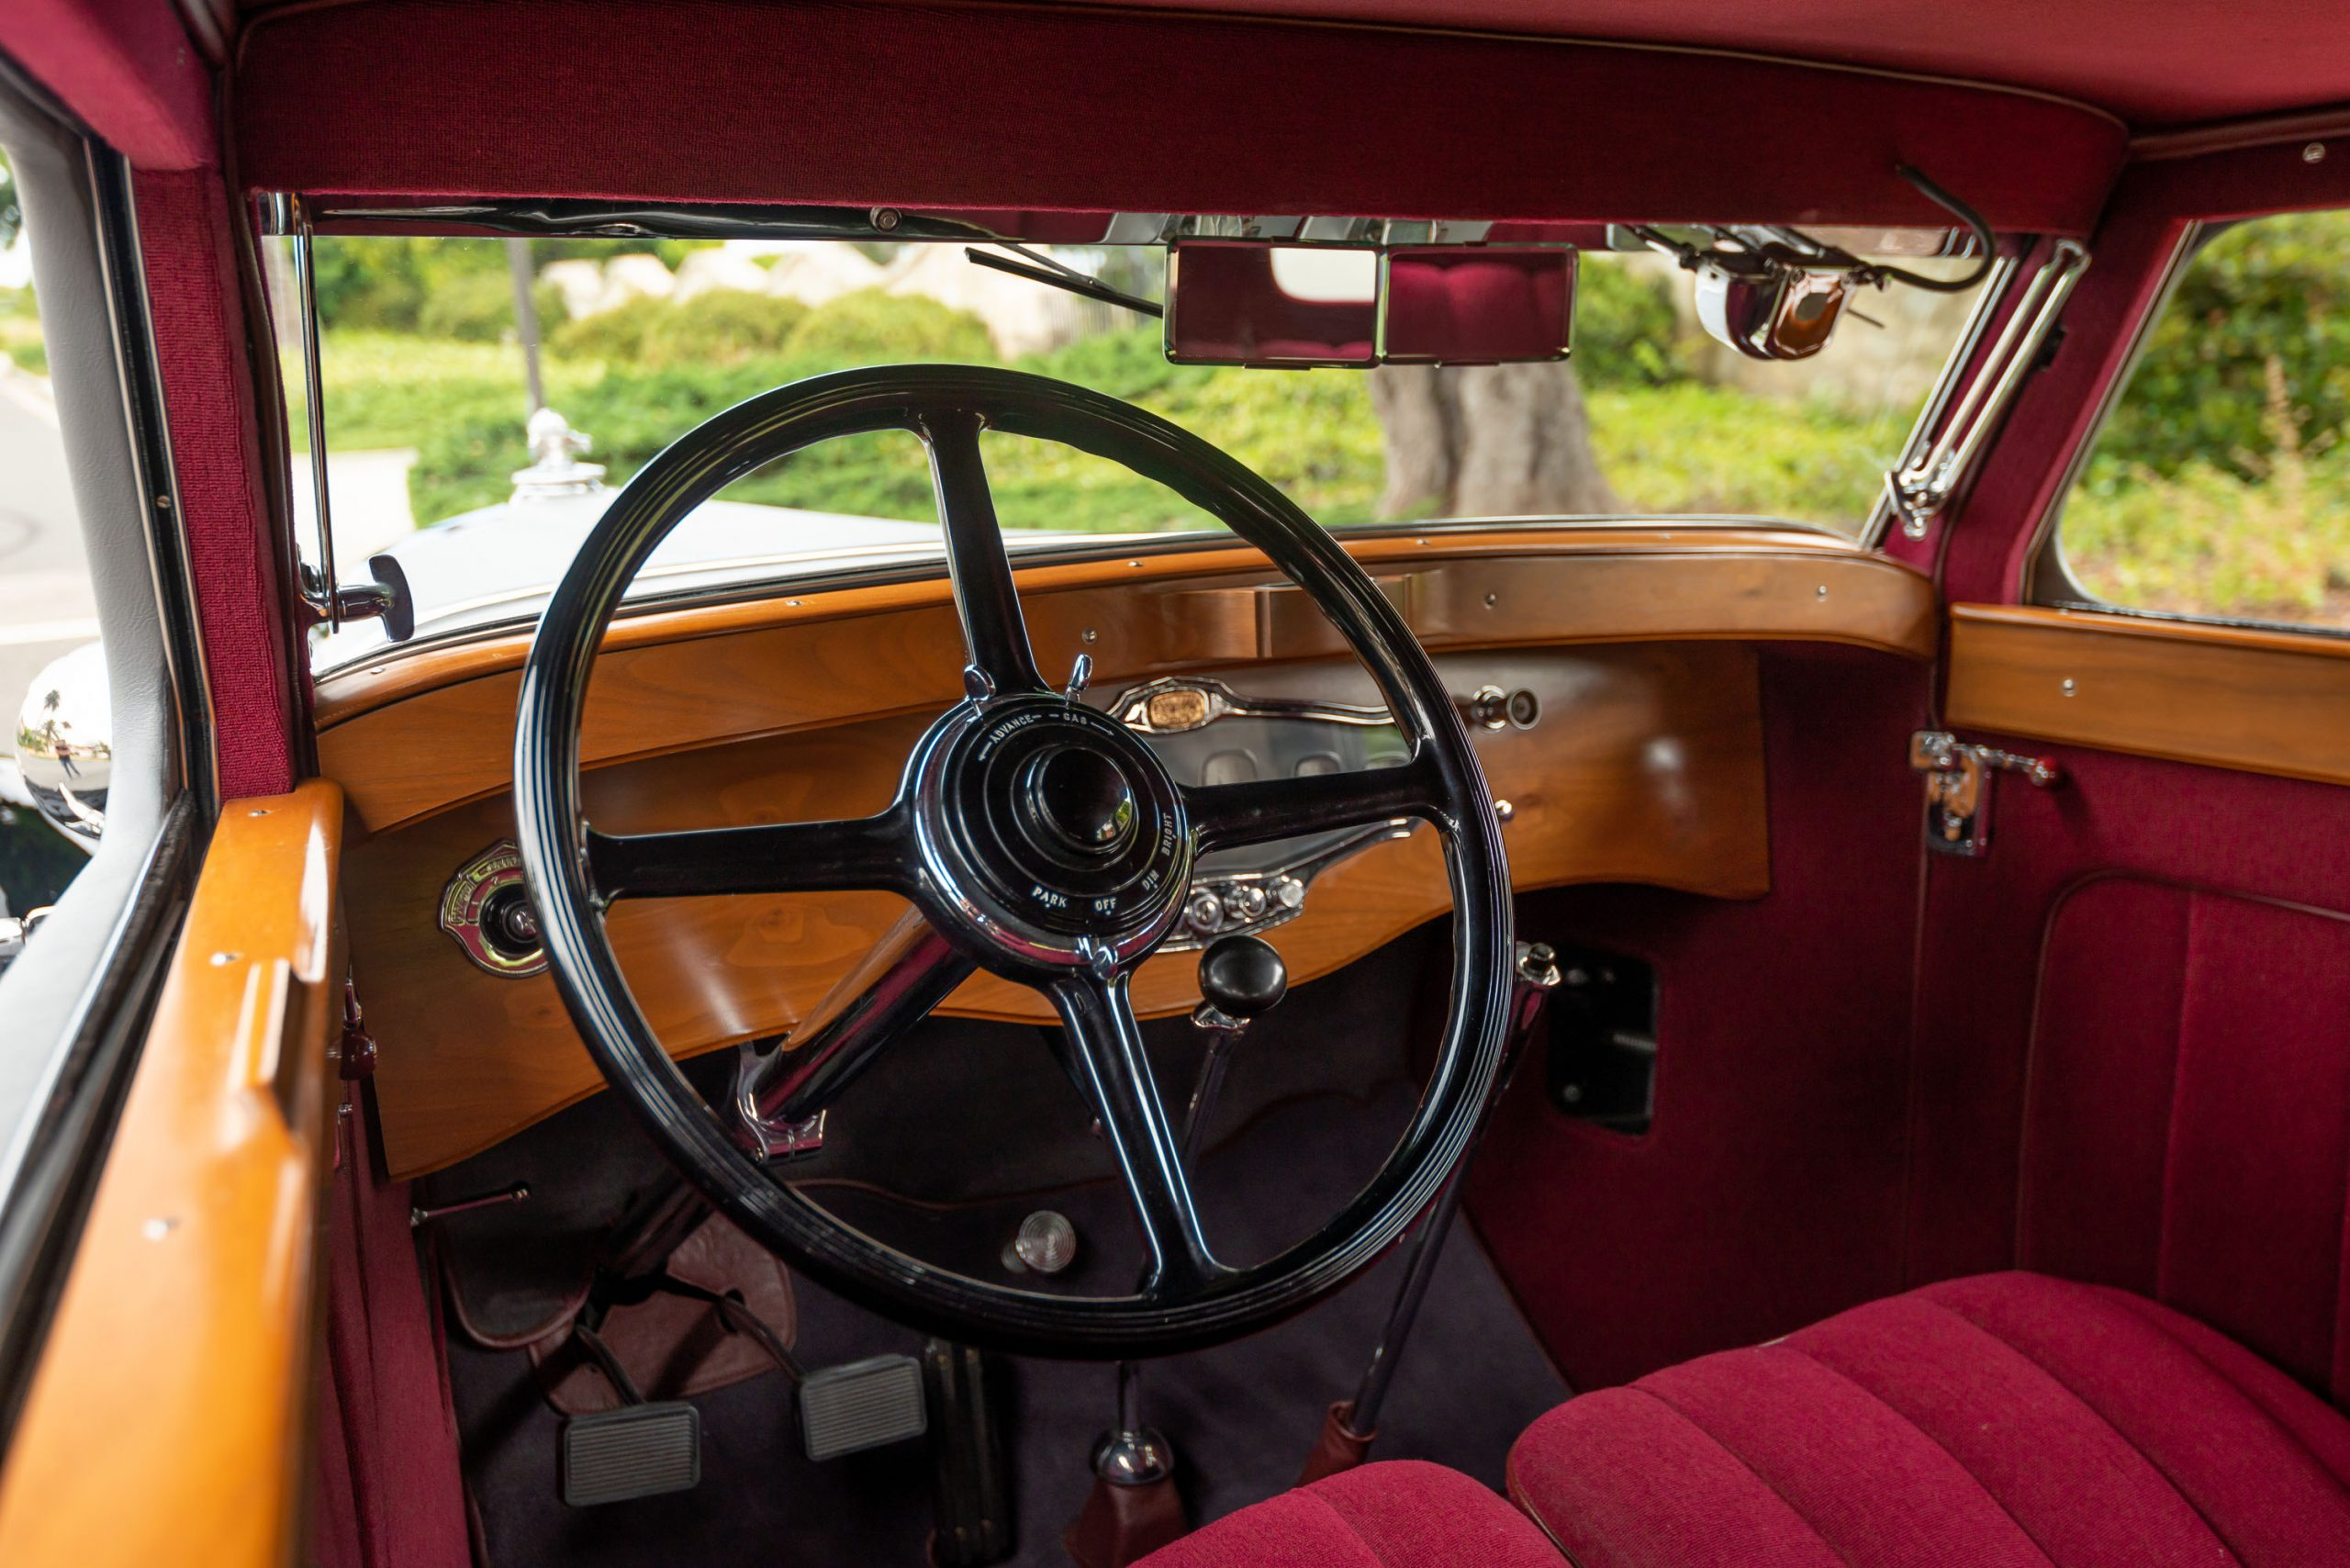 1930 Stutz Model MB Monte Carlo by Weymann interior